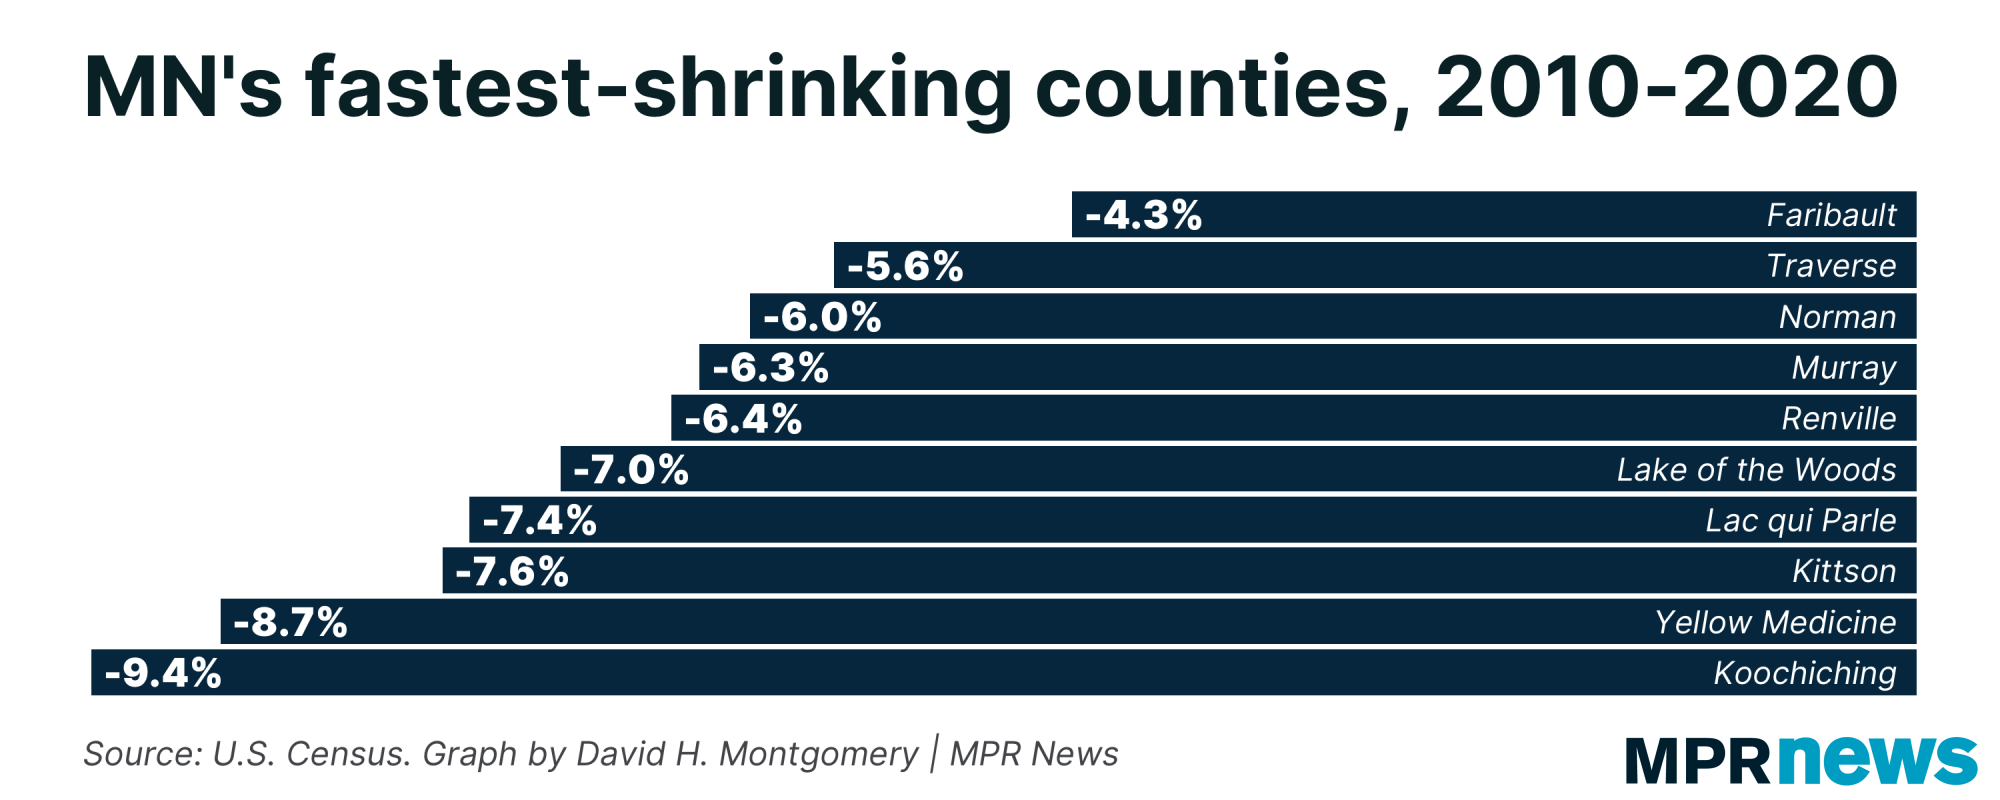 mn's fastest-shrinking counties, 2010-2020